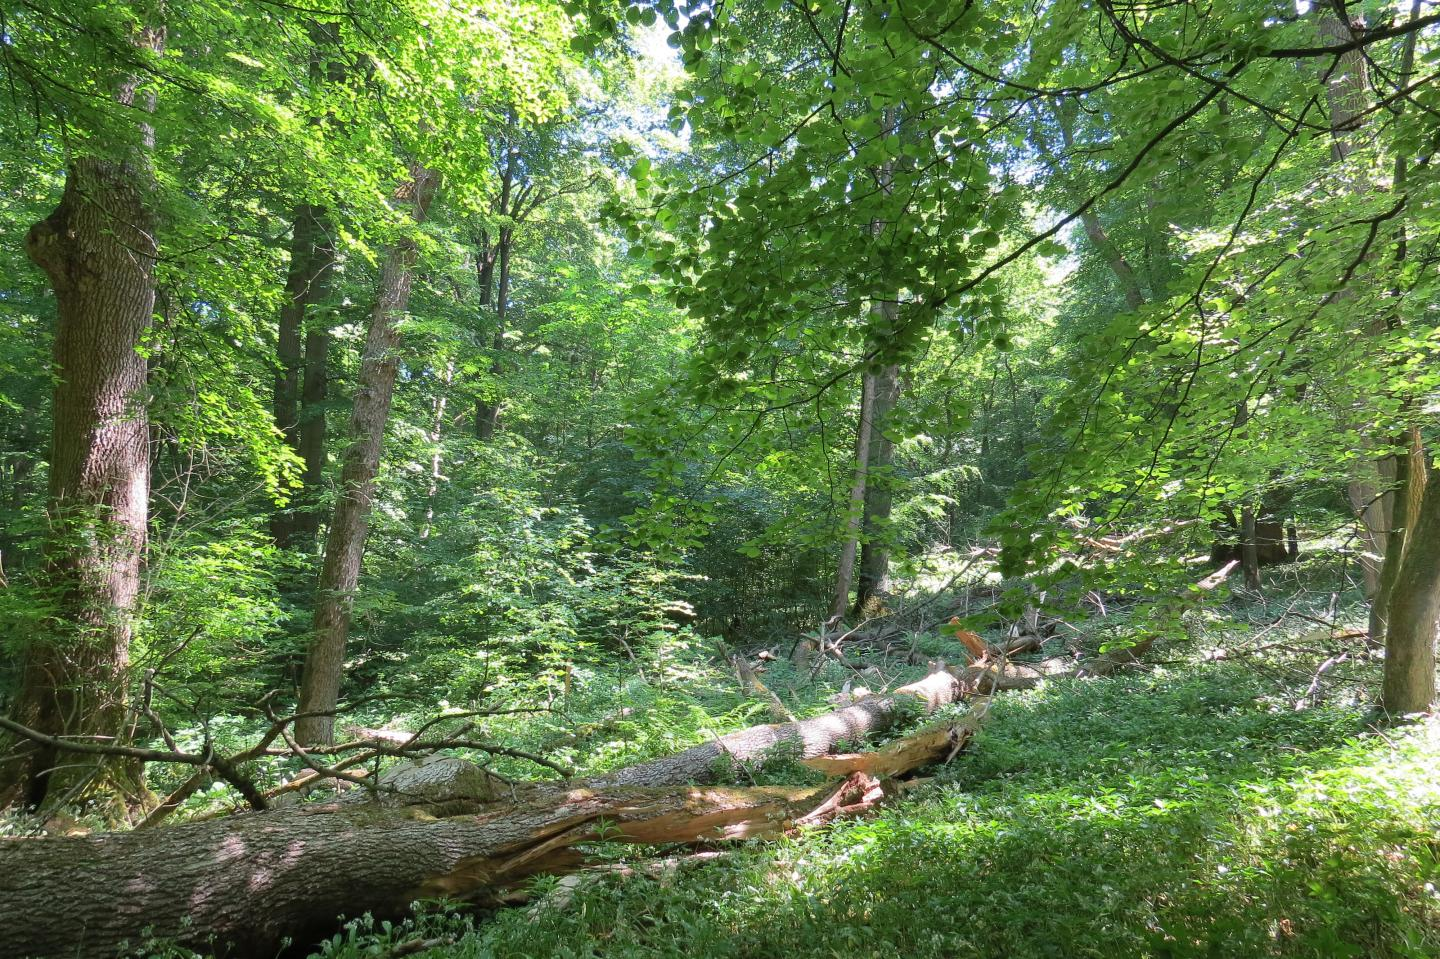 A Forest Scene in the Hainich National Park